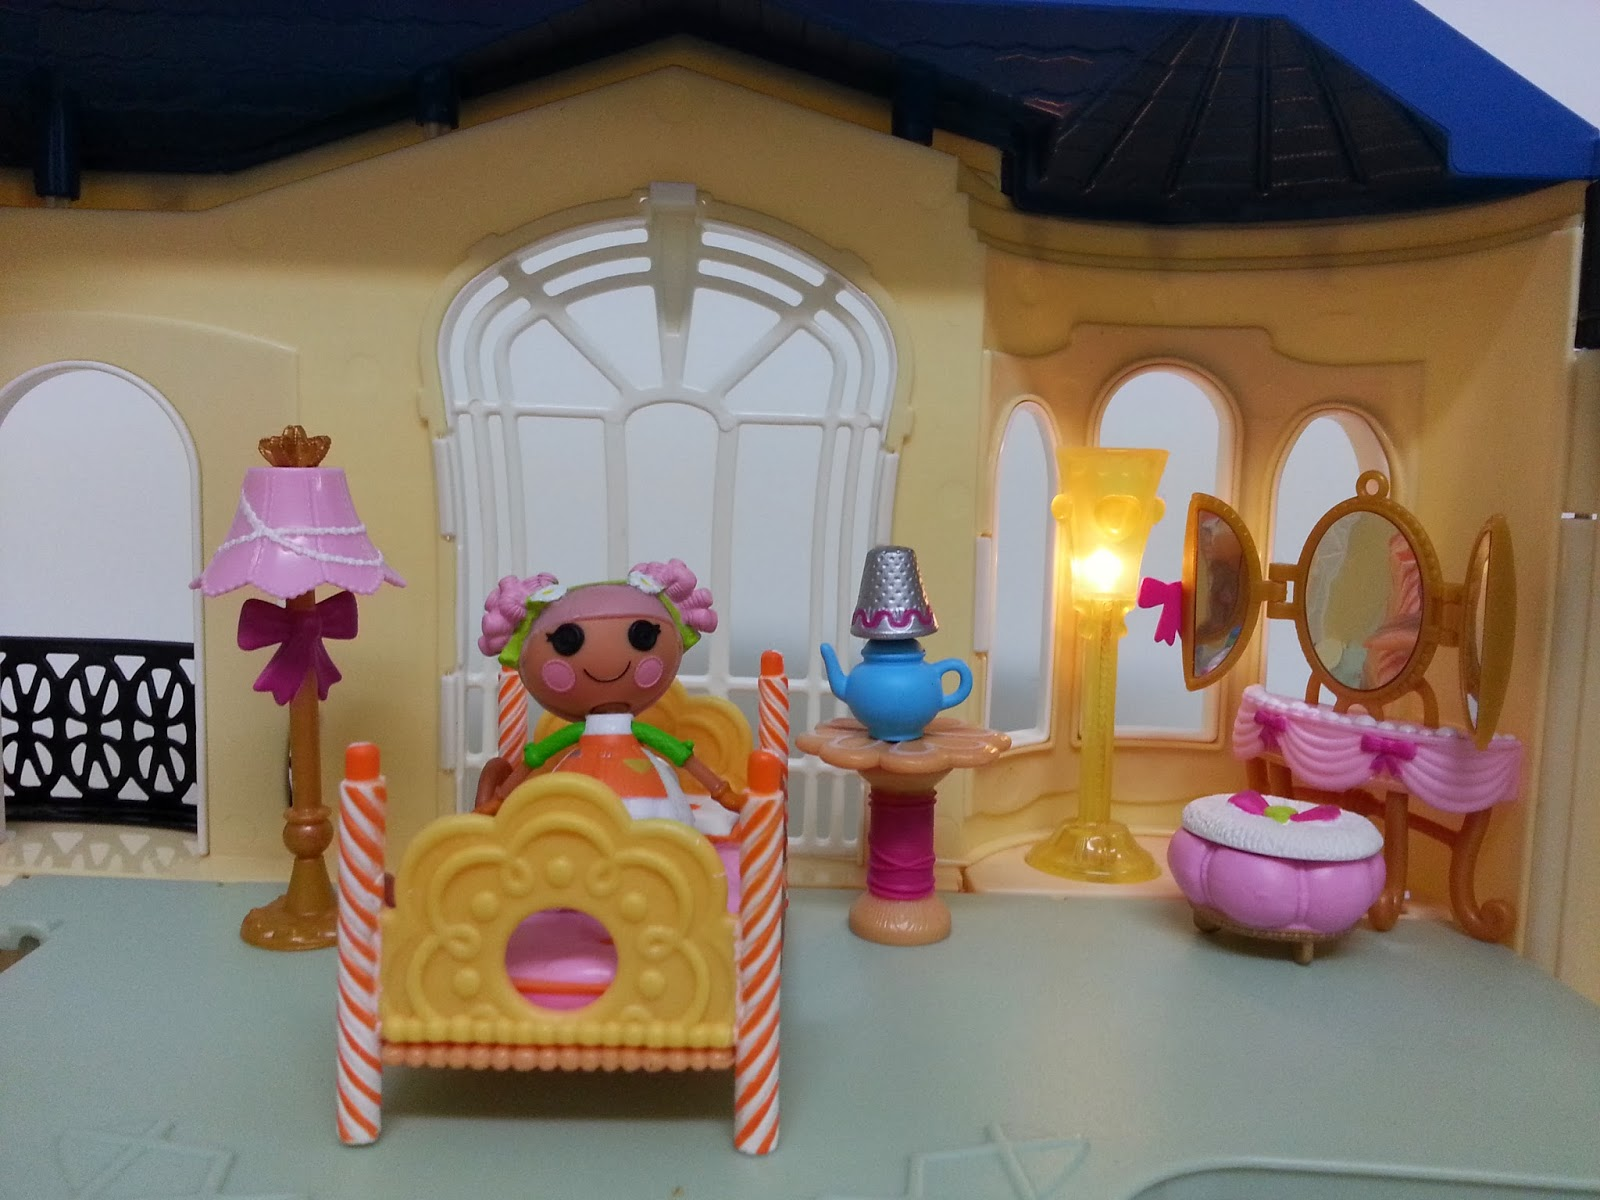 Lalaloopsy Bedroom Decor Jane Chacrie Redbox Dollhouse